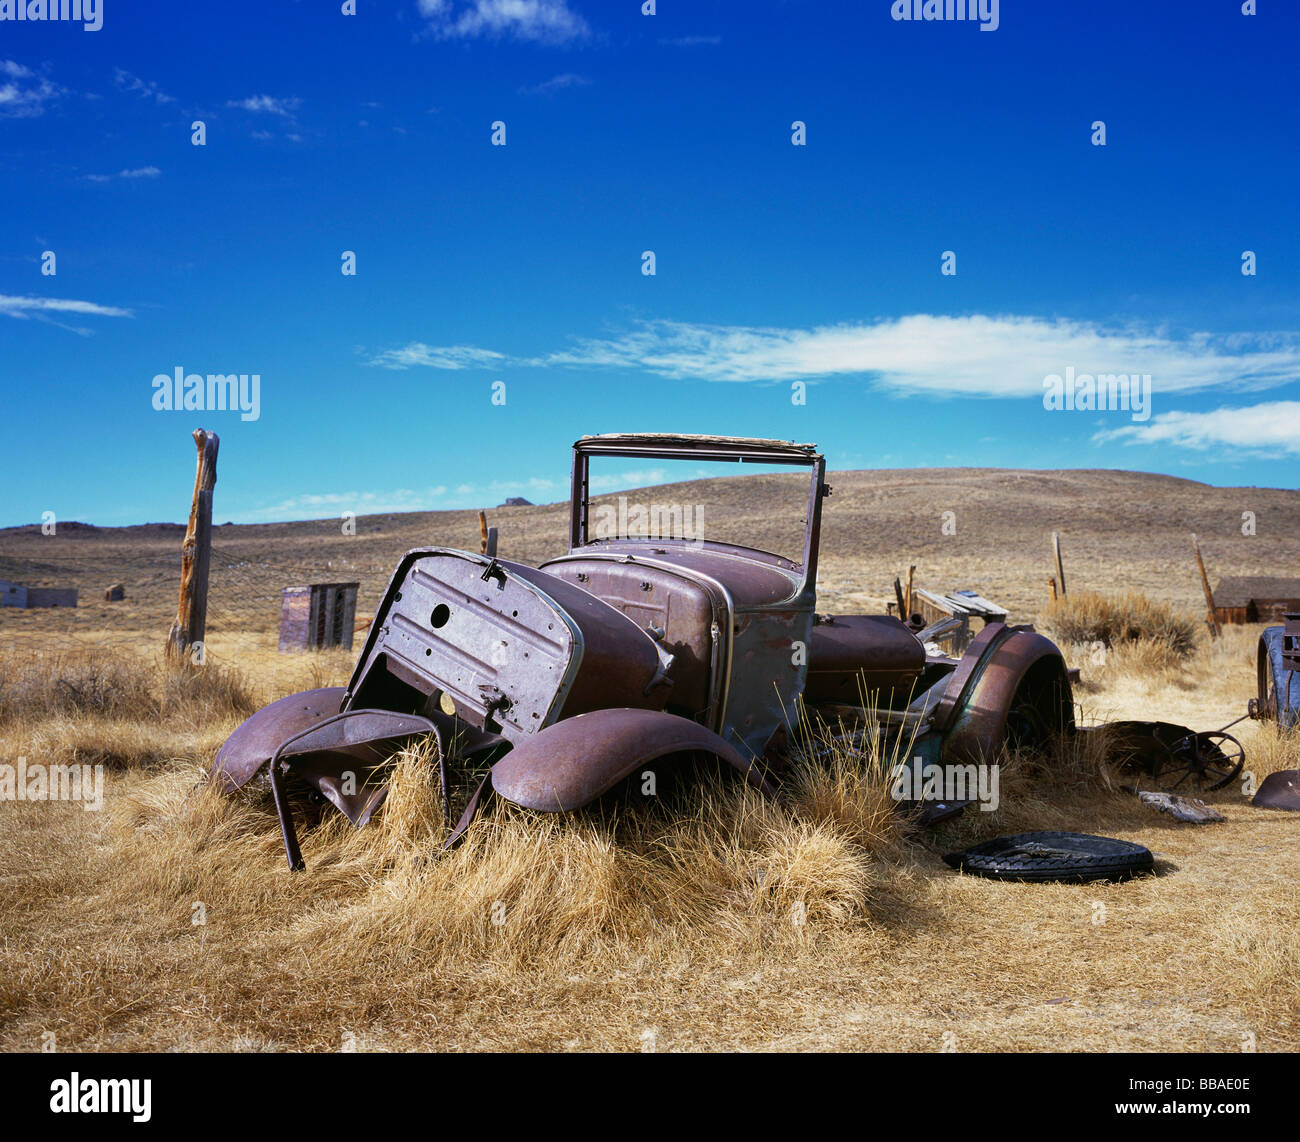 An old abandoned car in a field, Bodie State Historic Park, California, USA - Stock Image